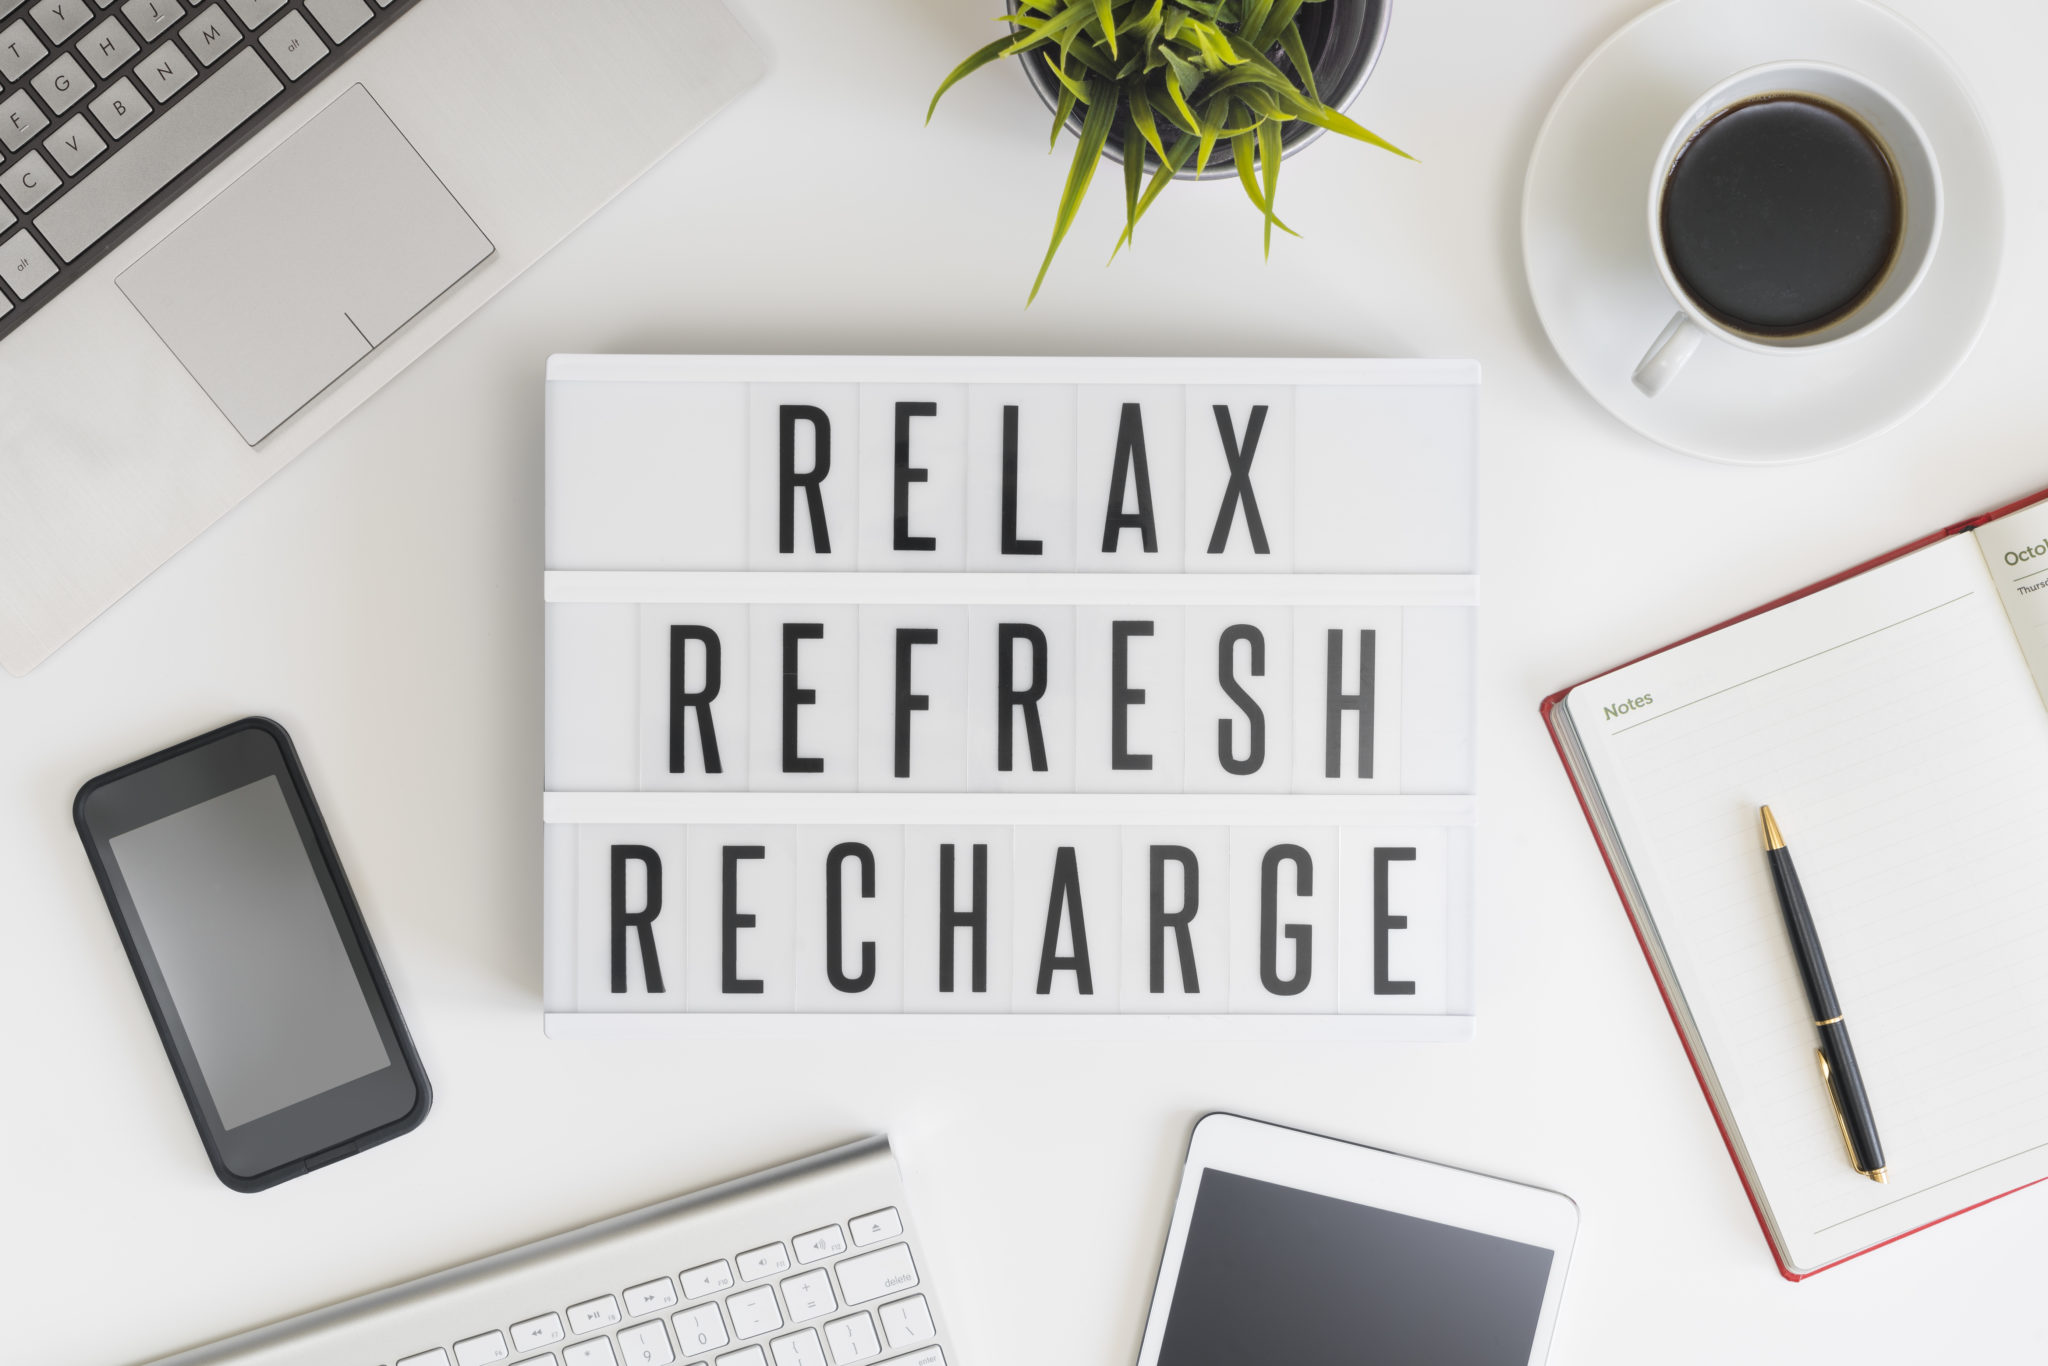 Relax, refresh and recharge words on office table with computer, coffee, notepad, smartphone and digital tablet